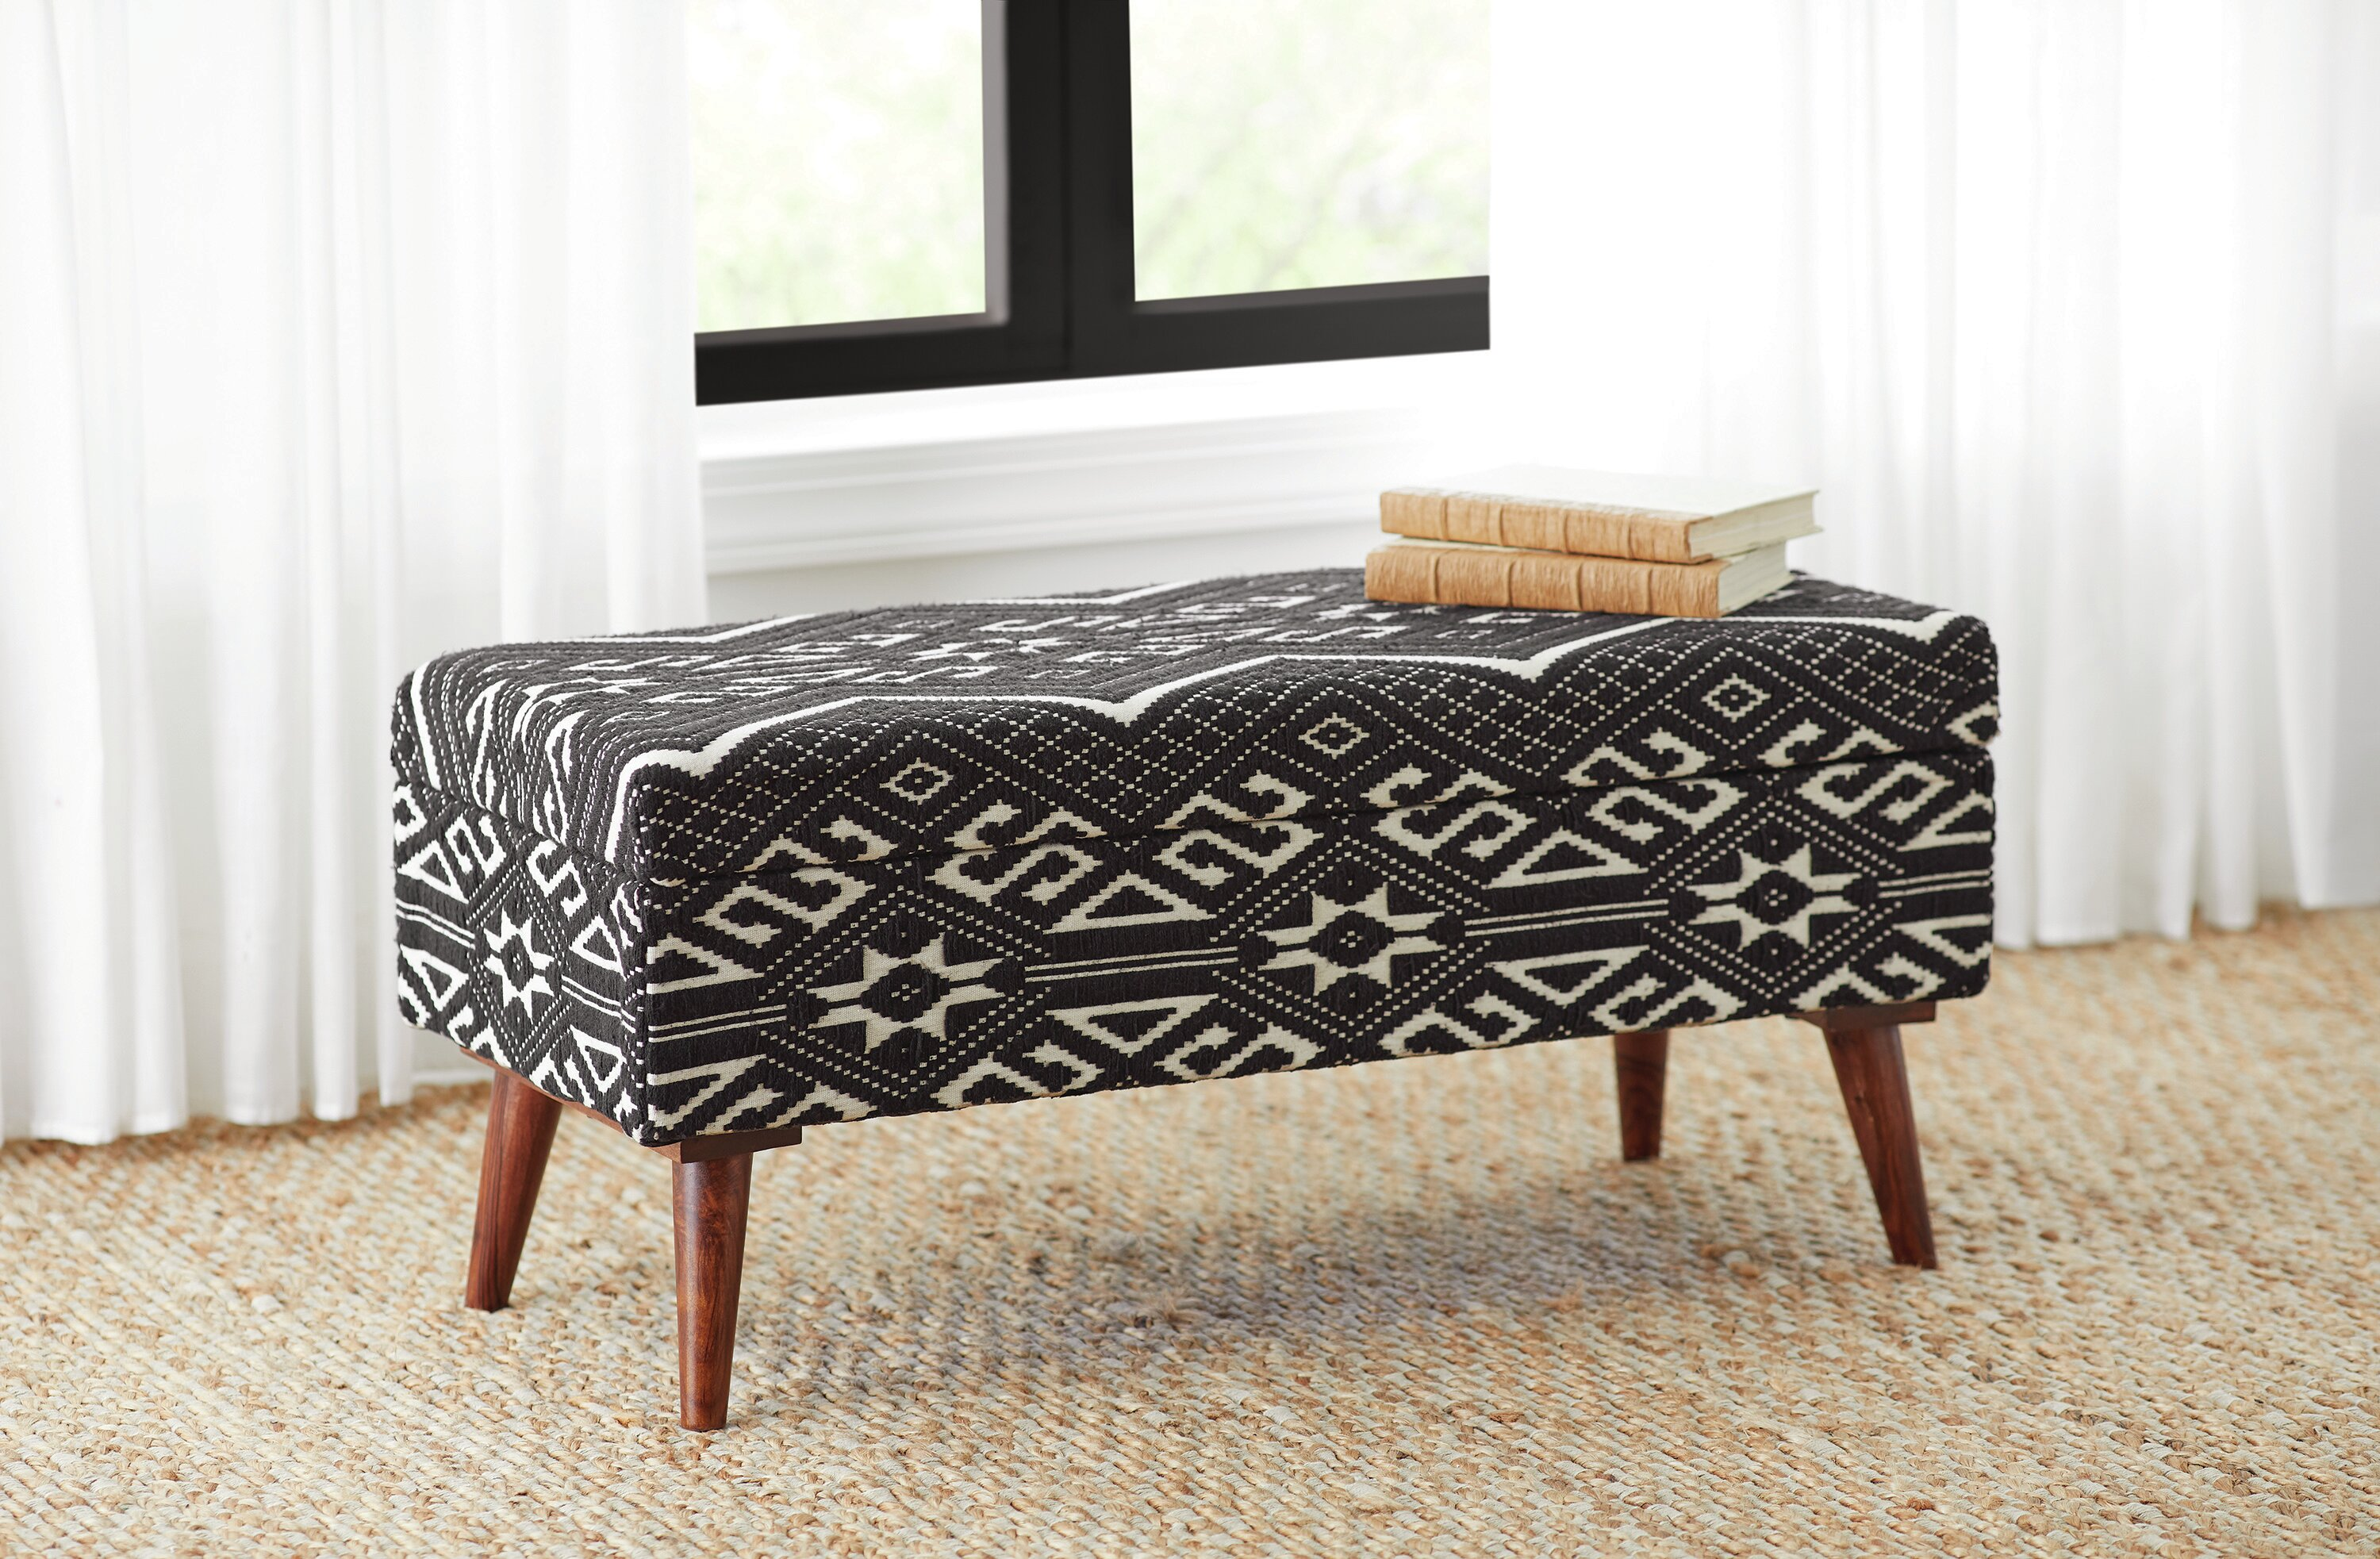 Bungalow Rose Upholstered Bench Black And White Reviews